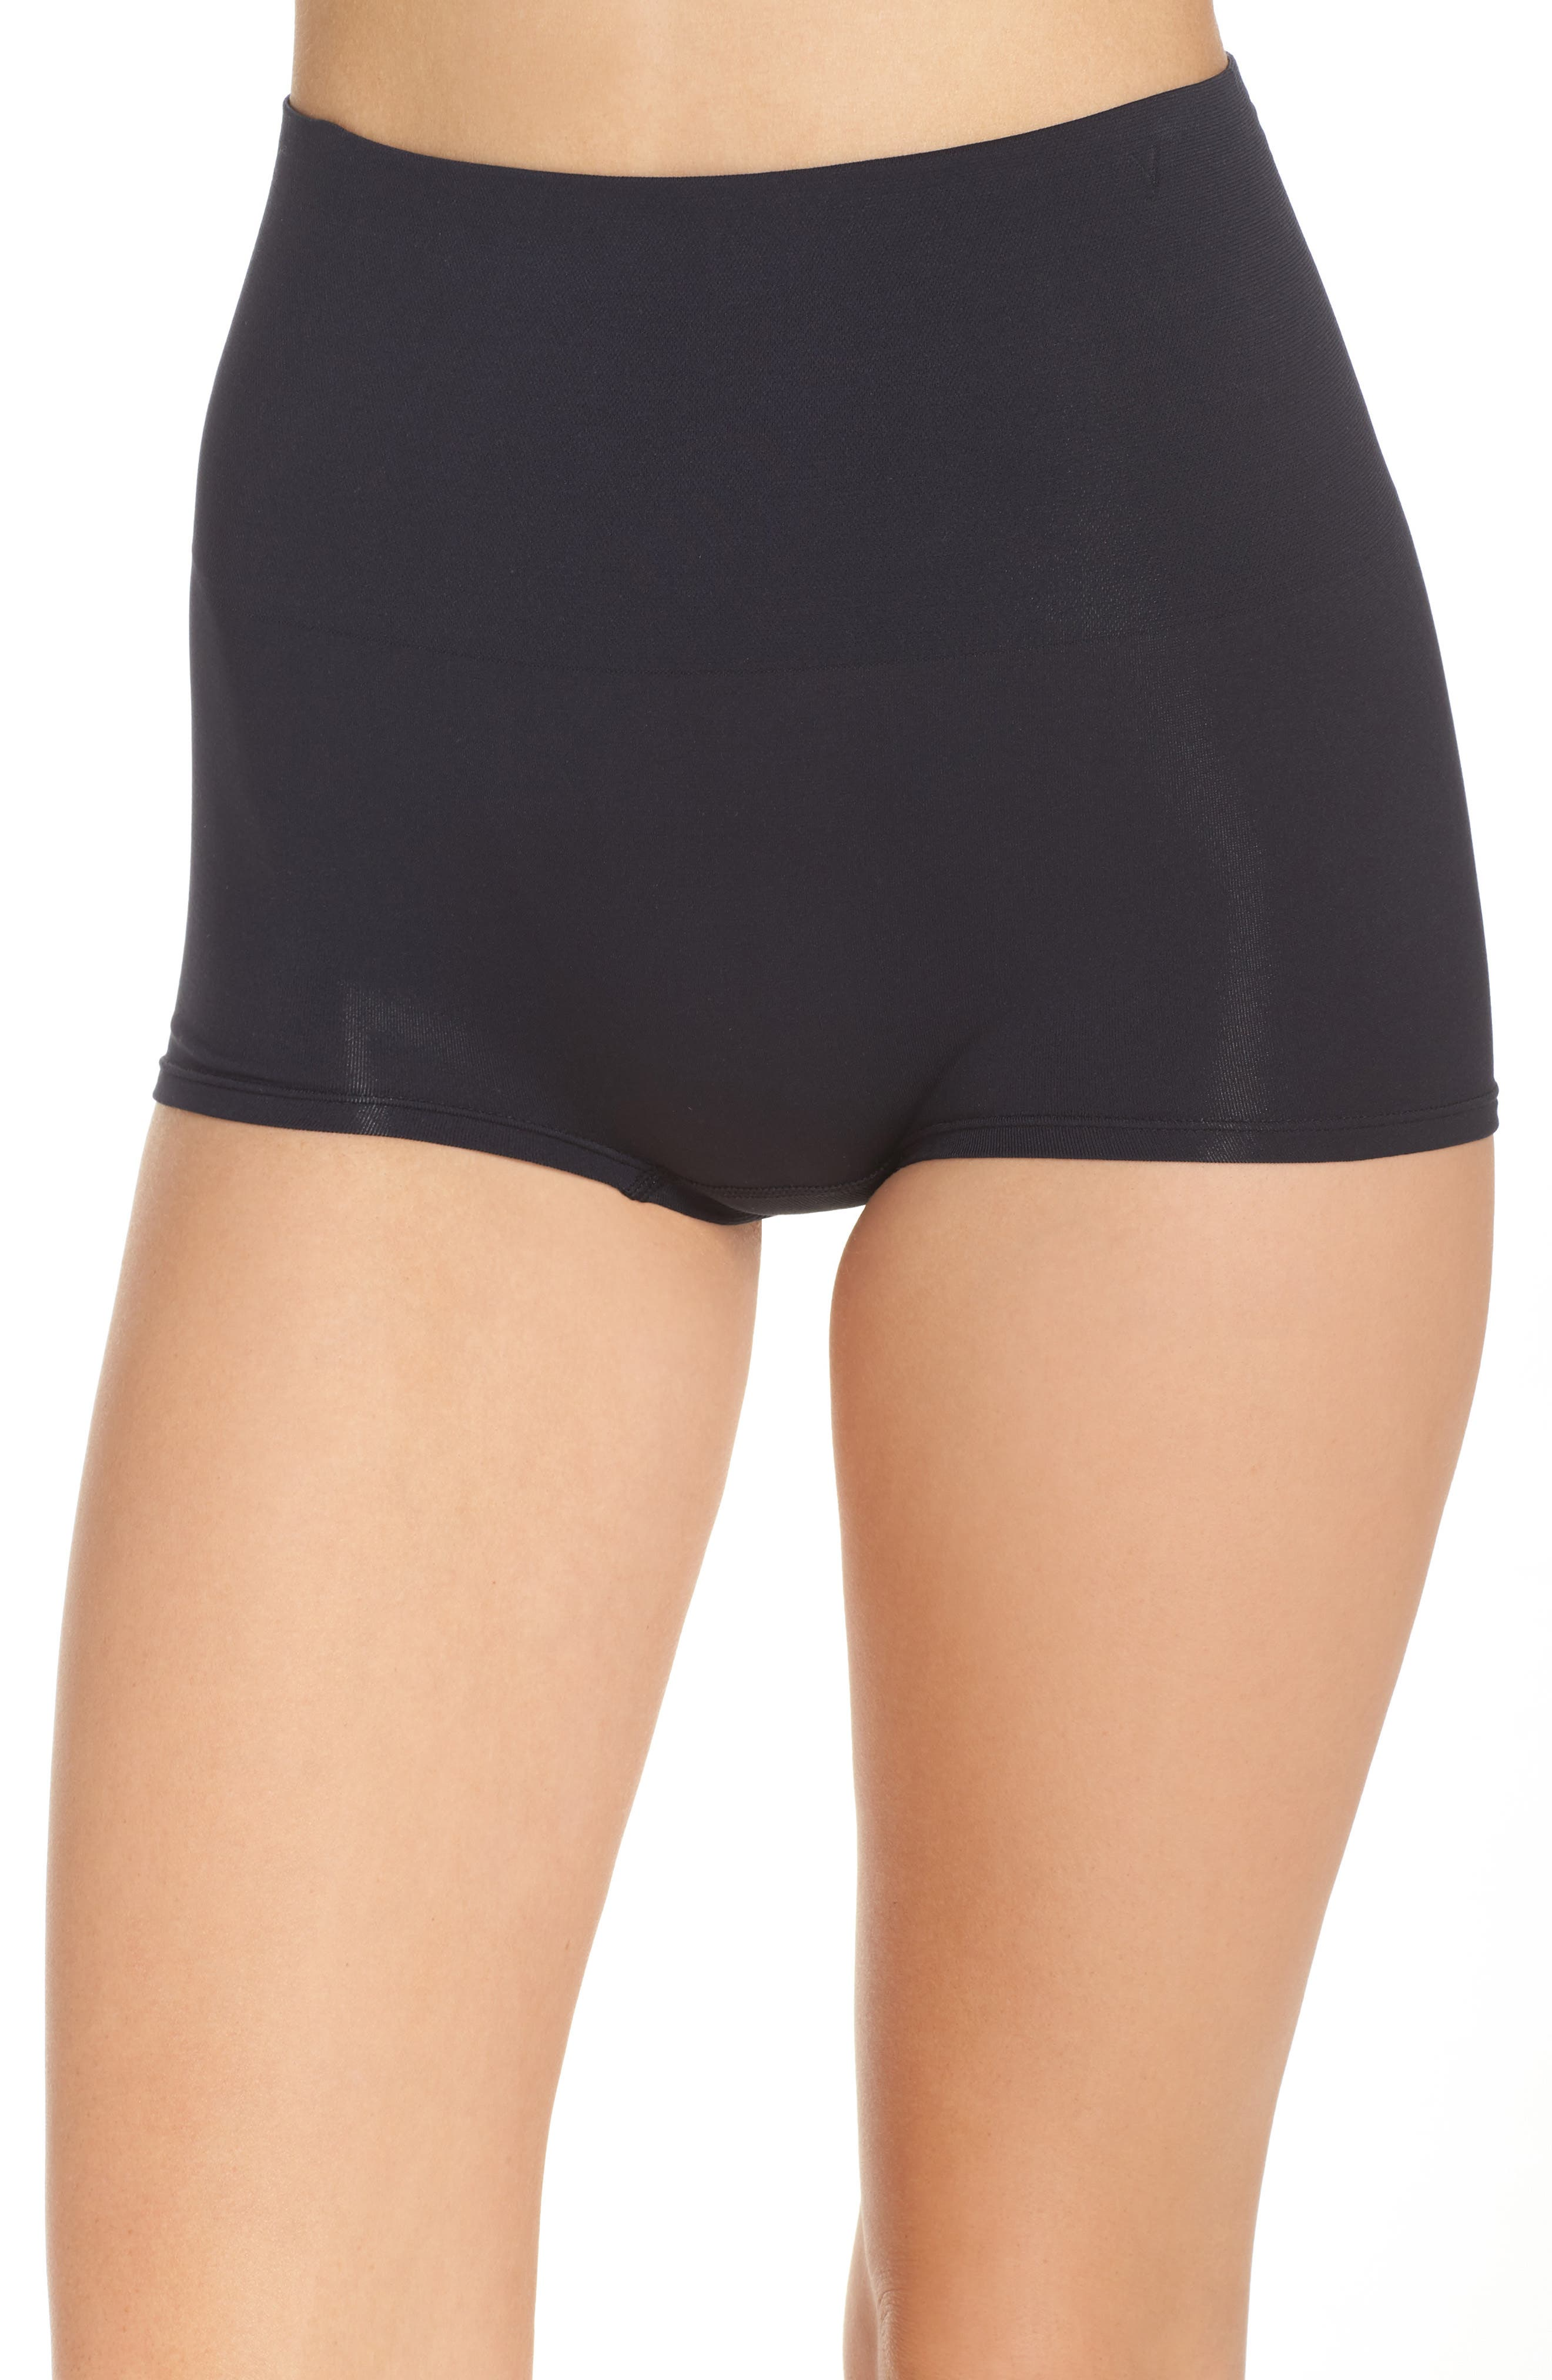 Ultralite Seamless Shaping Girlshorts,                             Main thumbnail 1, color,                             Black